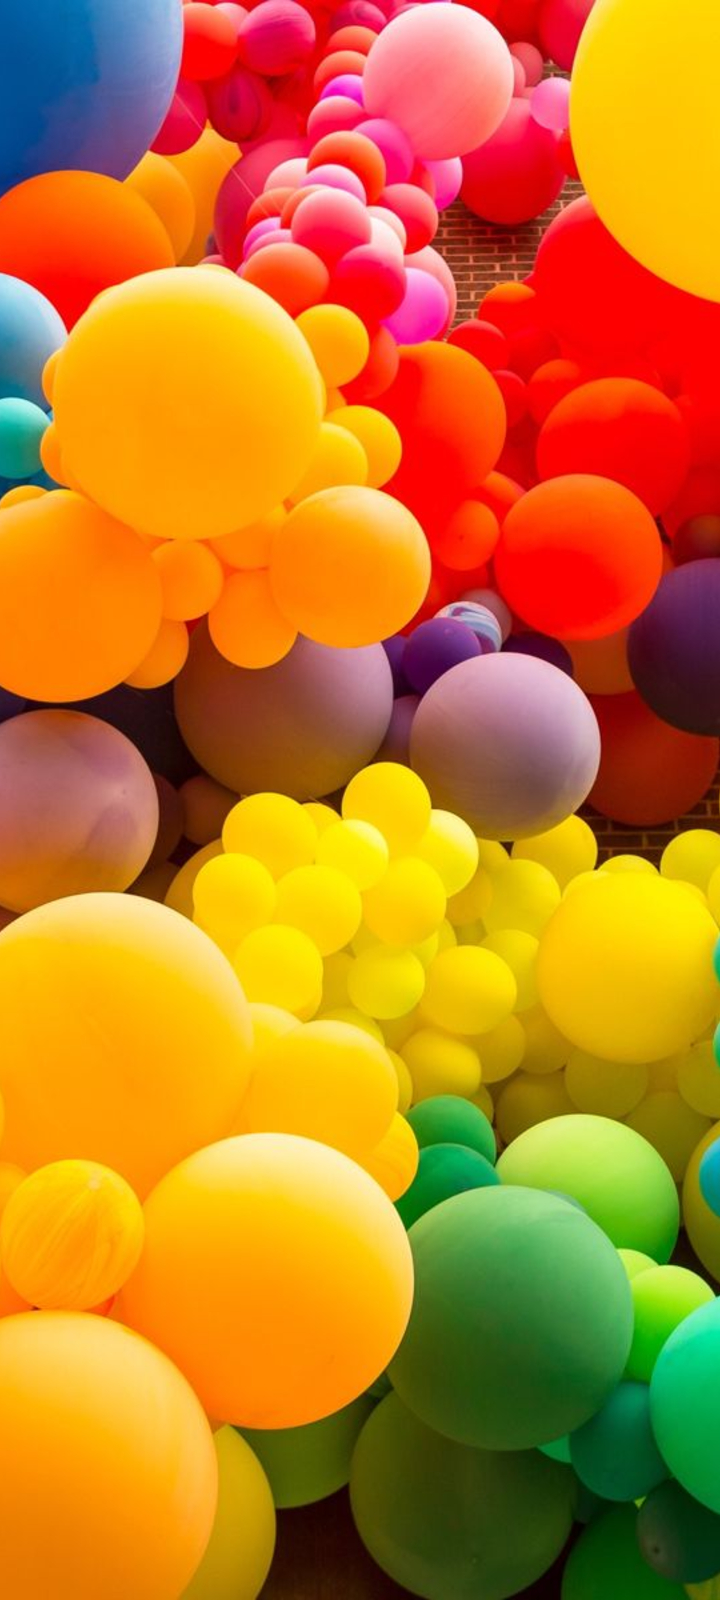 Realme V3 Balloons Wallpaper